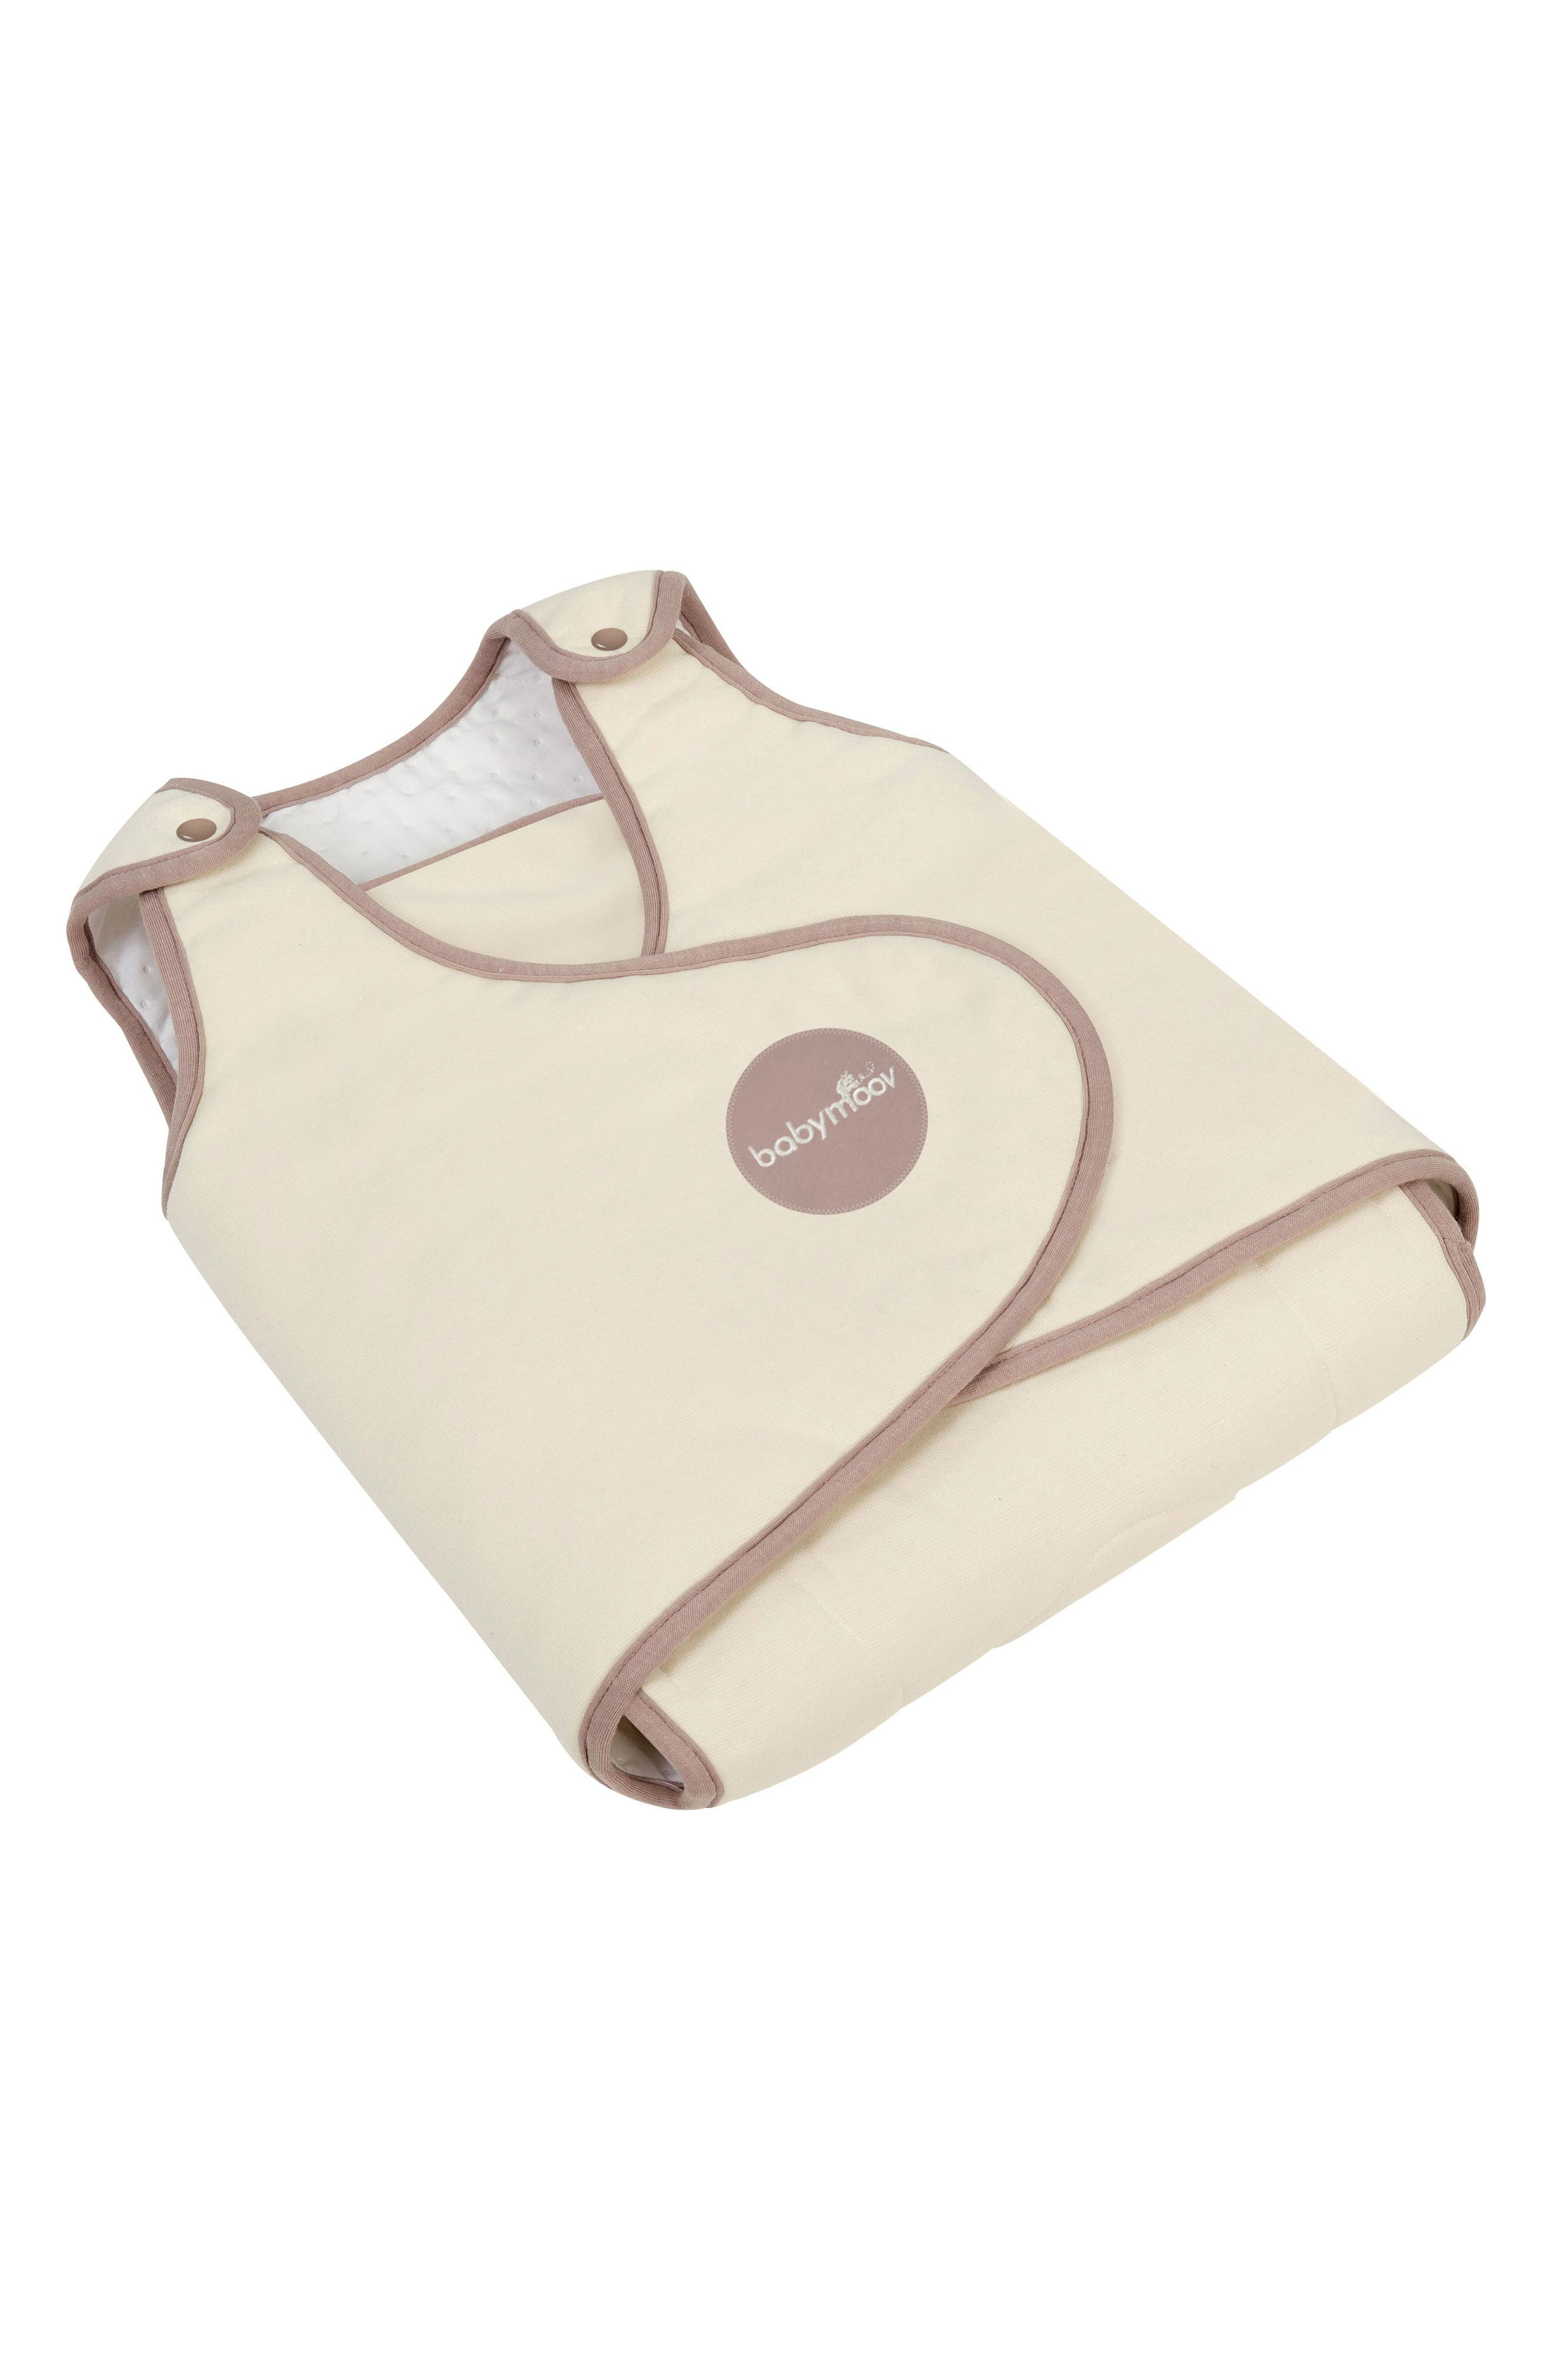 CosyBag Swaddle Wrap Blanket,                             Alternate thumbnail 4, color,                             CREAM